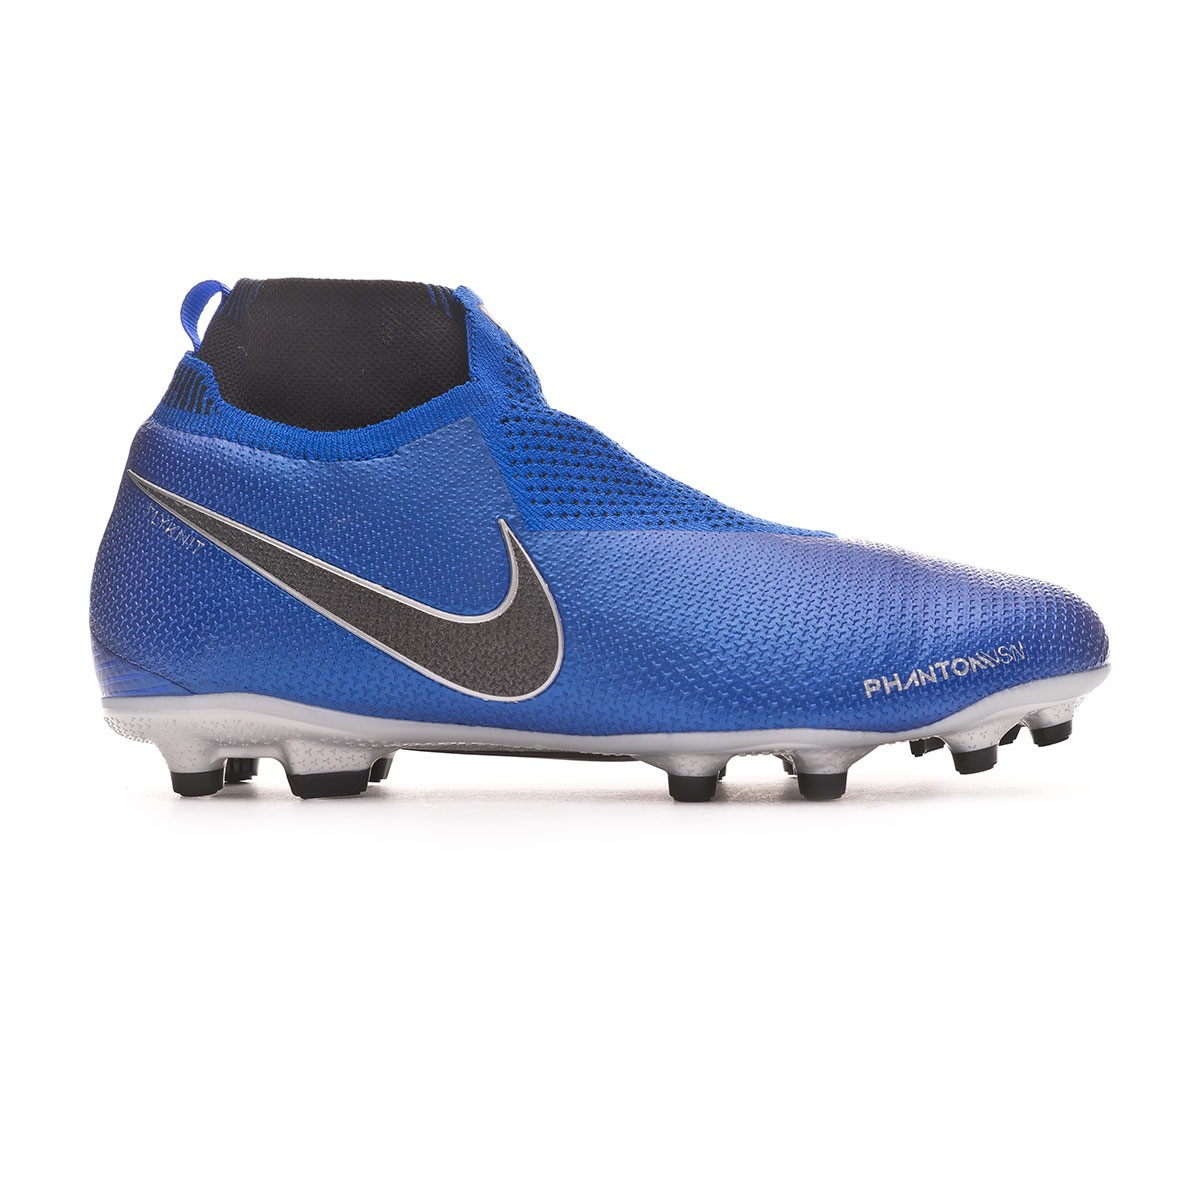 0cb4d7b92 Football Boots Nike Kids Phantom Vision Elite DF FG MG Racer blue-Black-Metallic  silver-Volt - Tienda de fútbol Fútbol Emotion